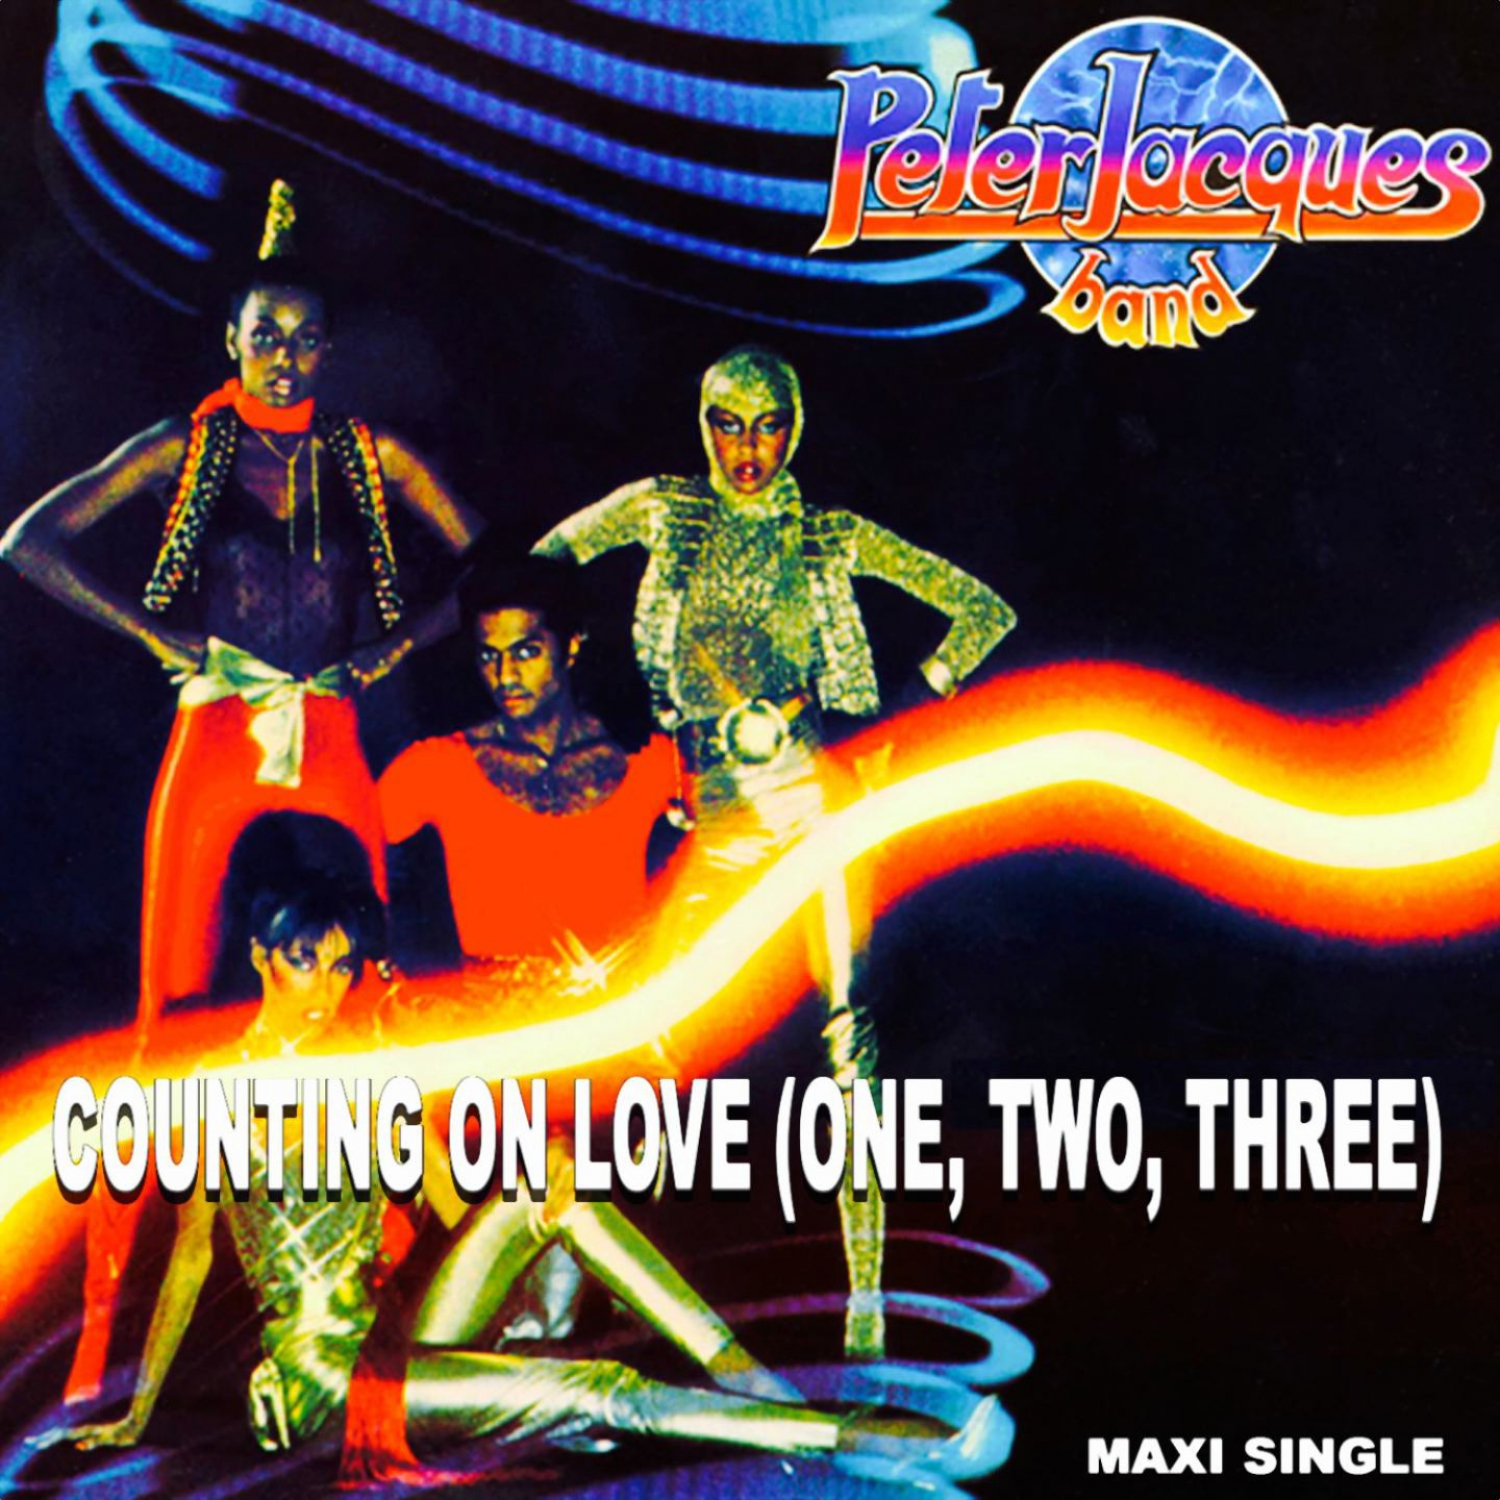 Peter Jacques Band - Counting on Love (One, Two, Three) (Single Version)